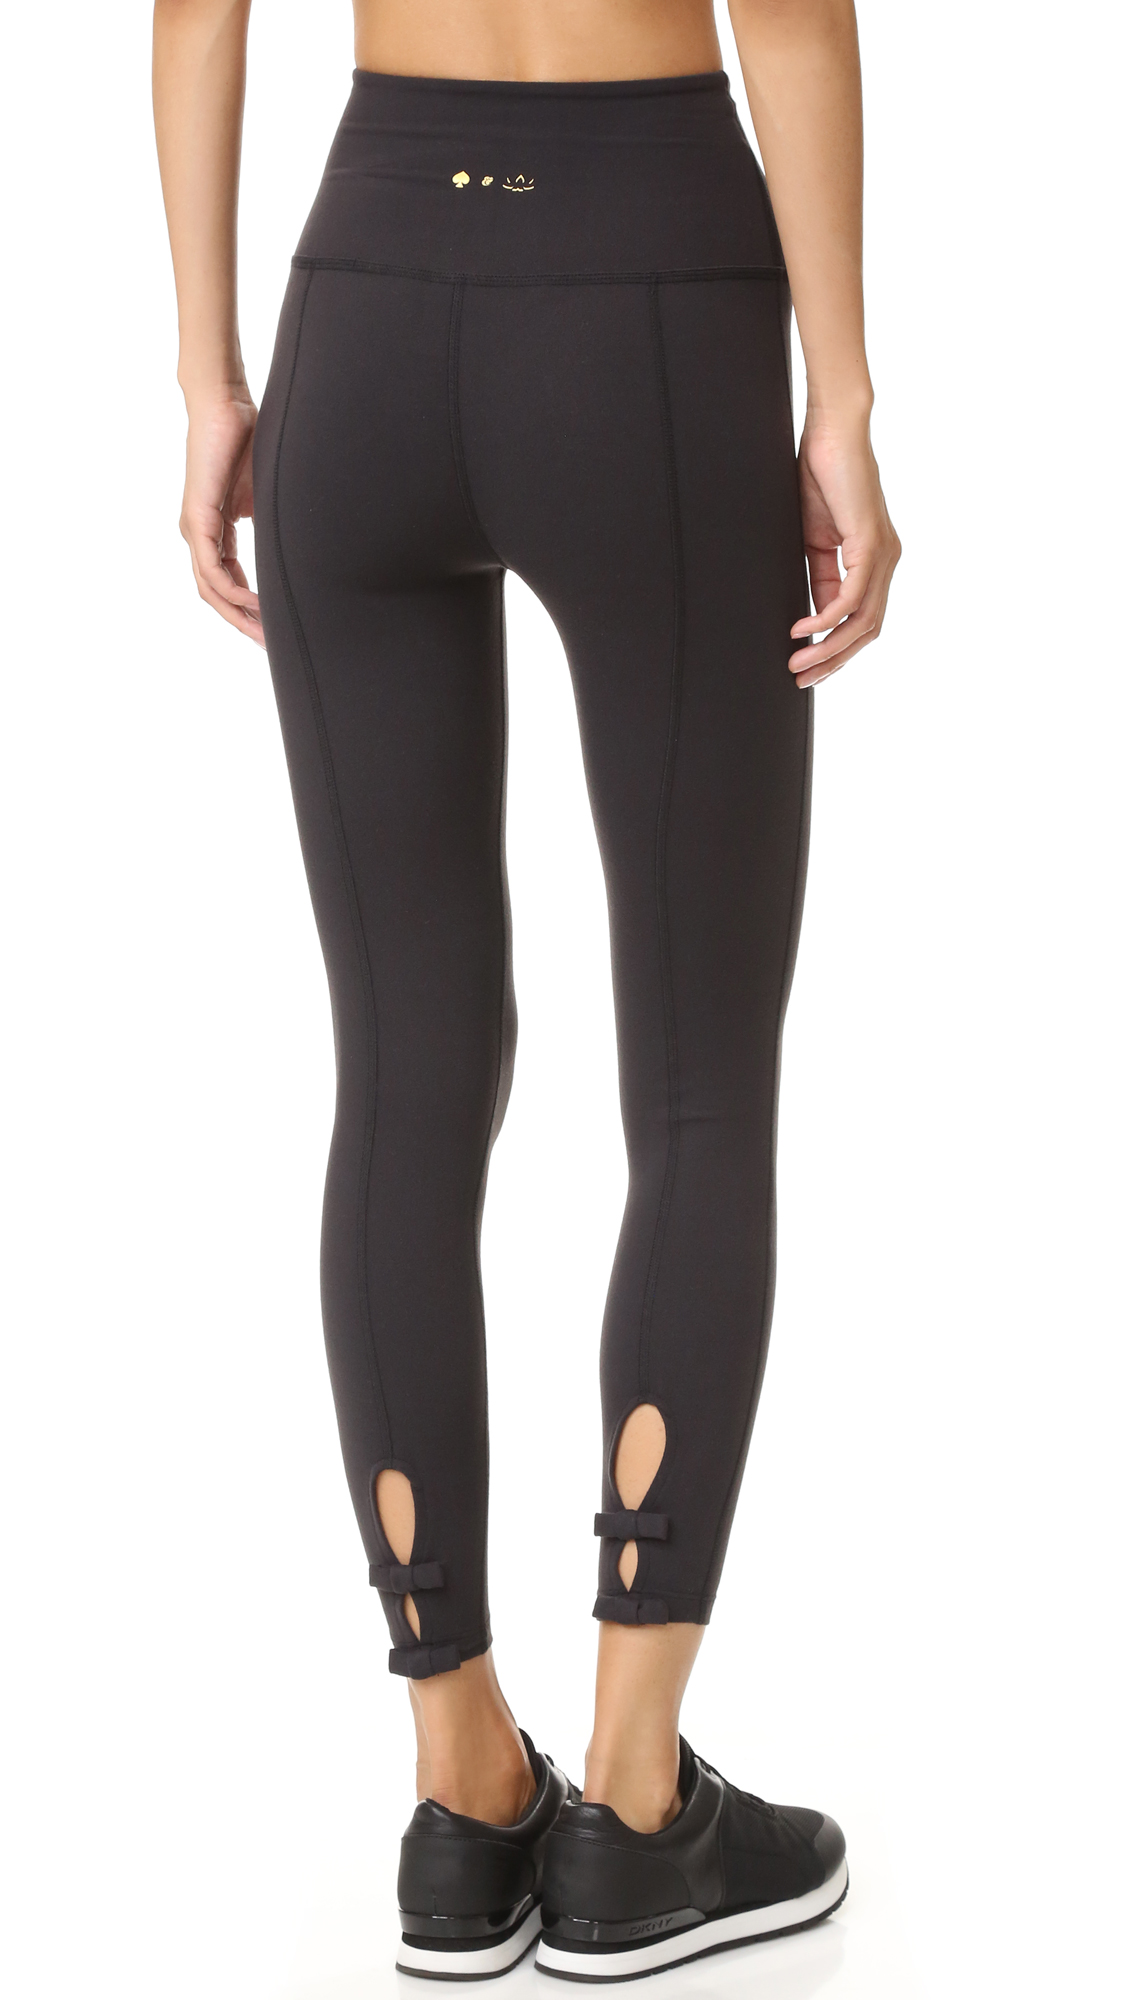 Beyond Yoga x Kate Spade New York high rise leggings, detailed with bows at the cutout cuffs. Flat overlock seams lend a close, comfortable fit. Fabric: Activewear jersey. 90% supplex nylon/10% lycra spandex. Wash cold. Made in